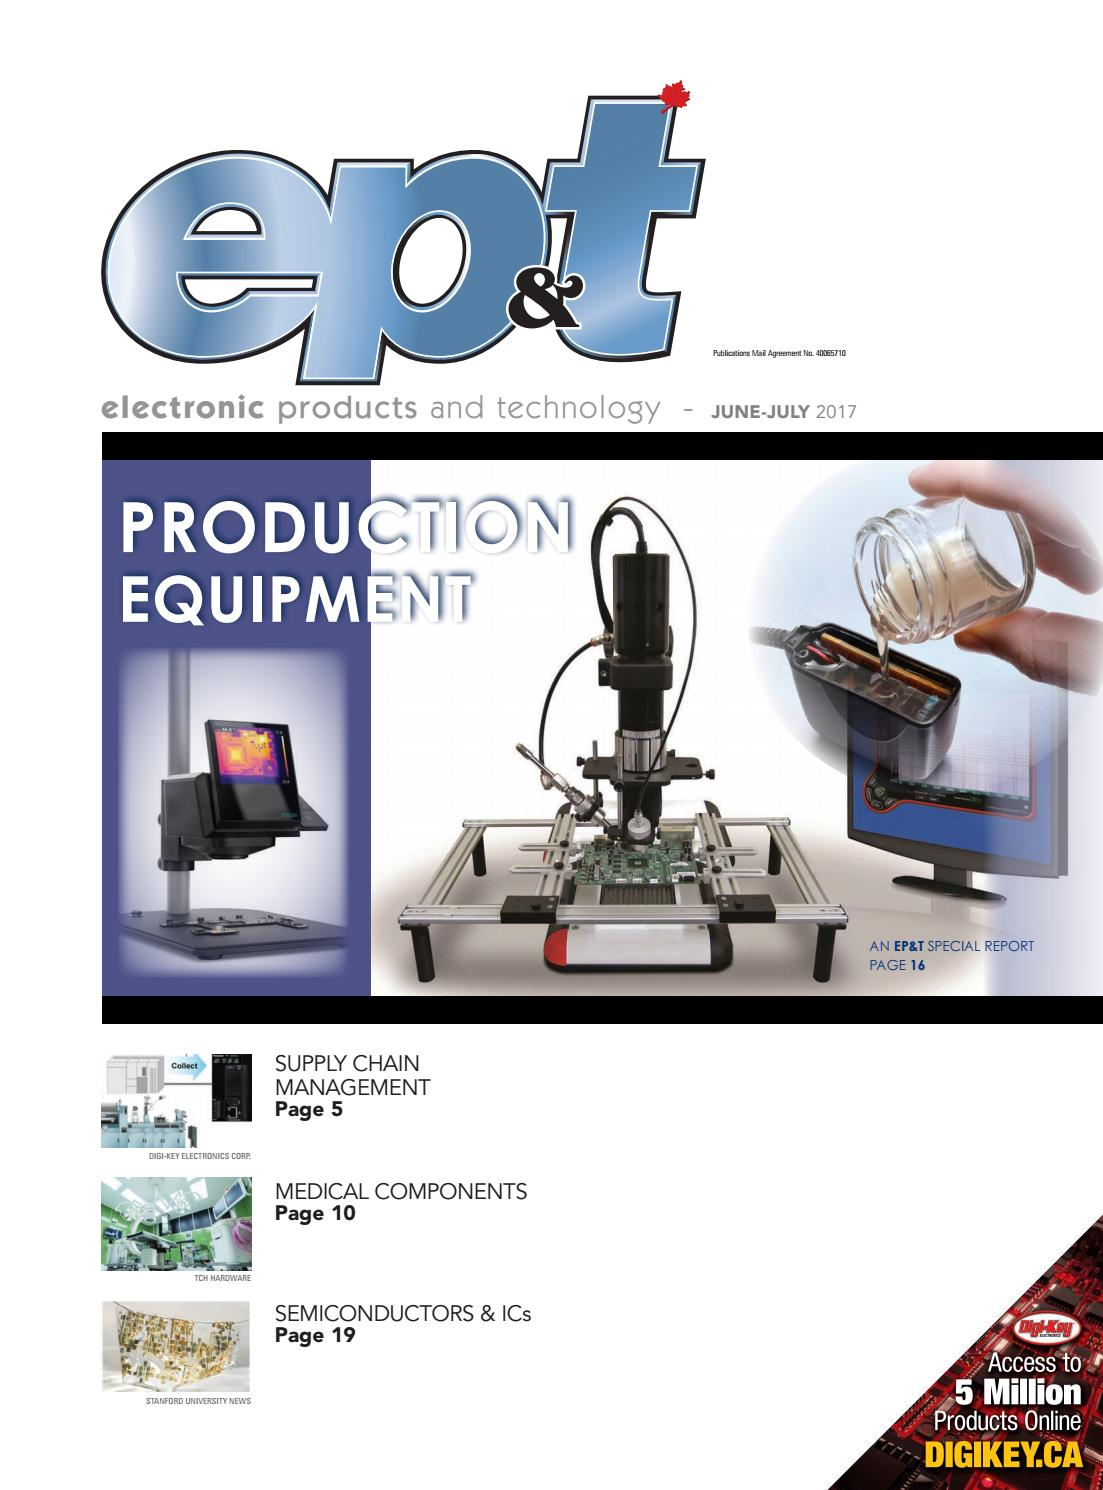 Electronic Products And Technology June July 2017 By Annex Newcom Lp Koa Speer Electronics Your Passive Component Partner Issuu